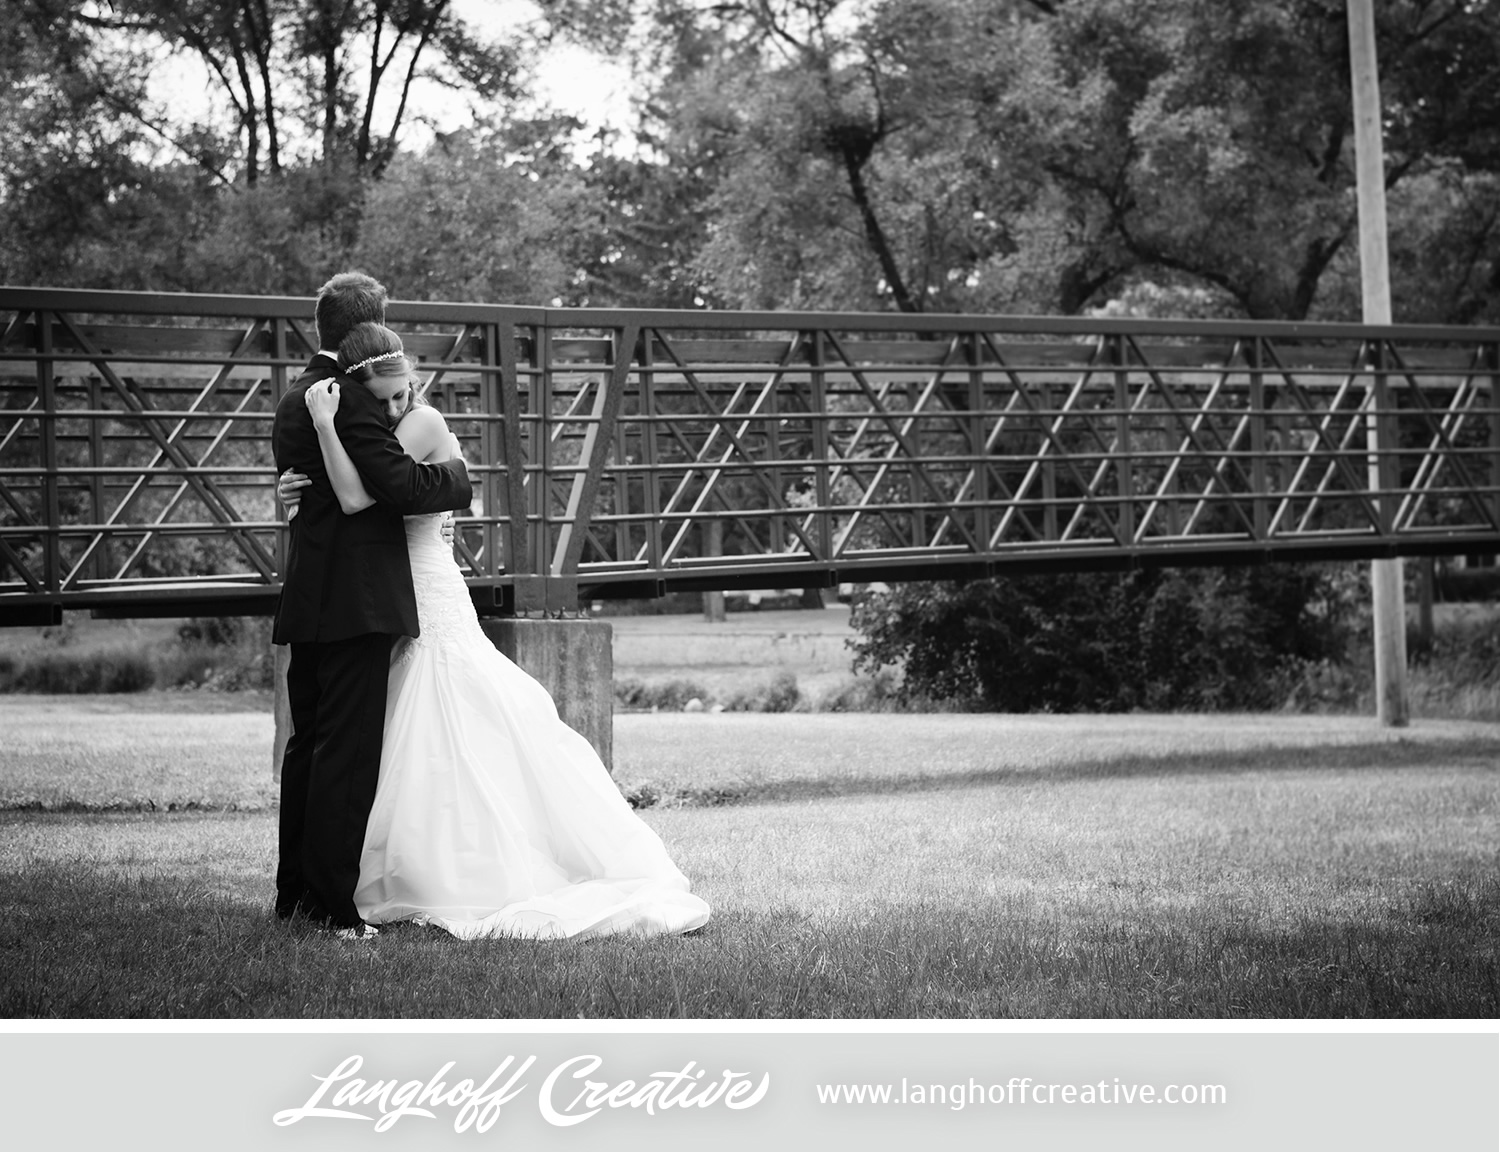 PlainfieldWedding-2013-LanghoffCreative-MattErin-7-photo.jpg